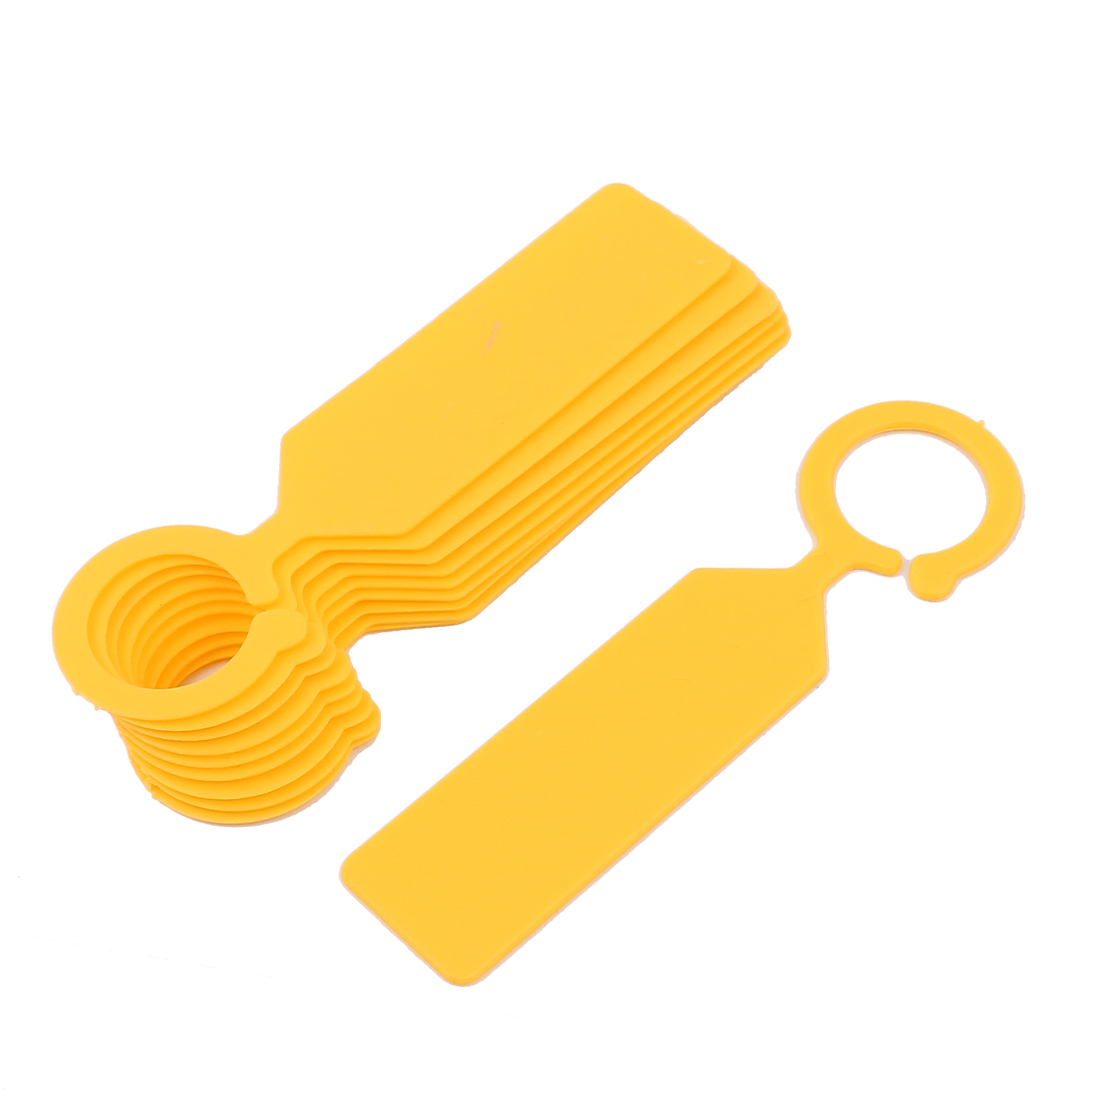 Plastic Hook Nursery Garden Plant Seed Hanging Tag Label Marker Yellow 10Pcs